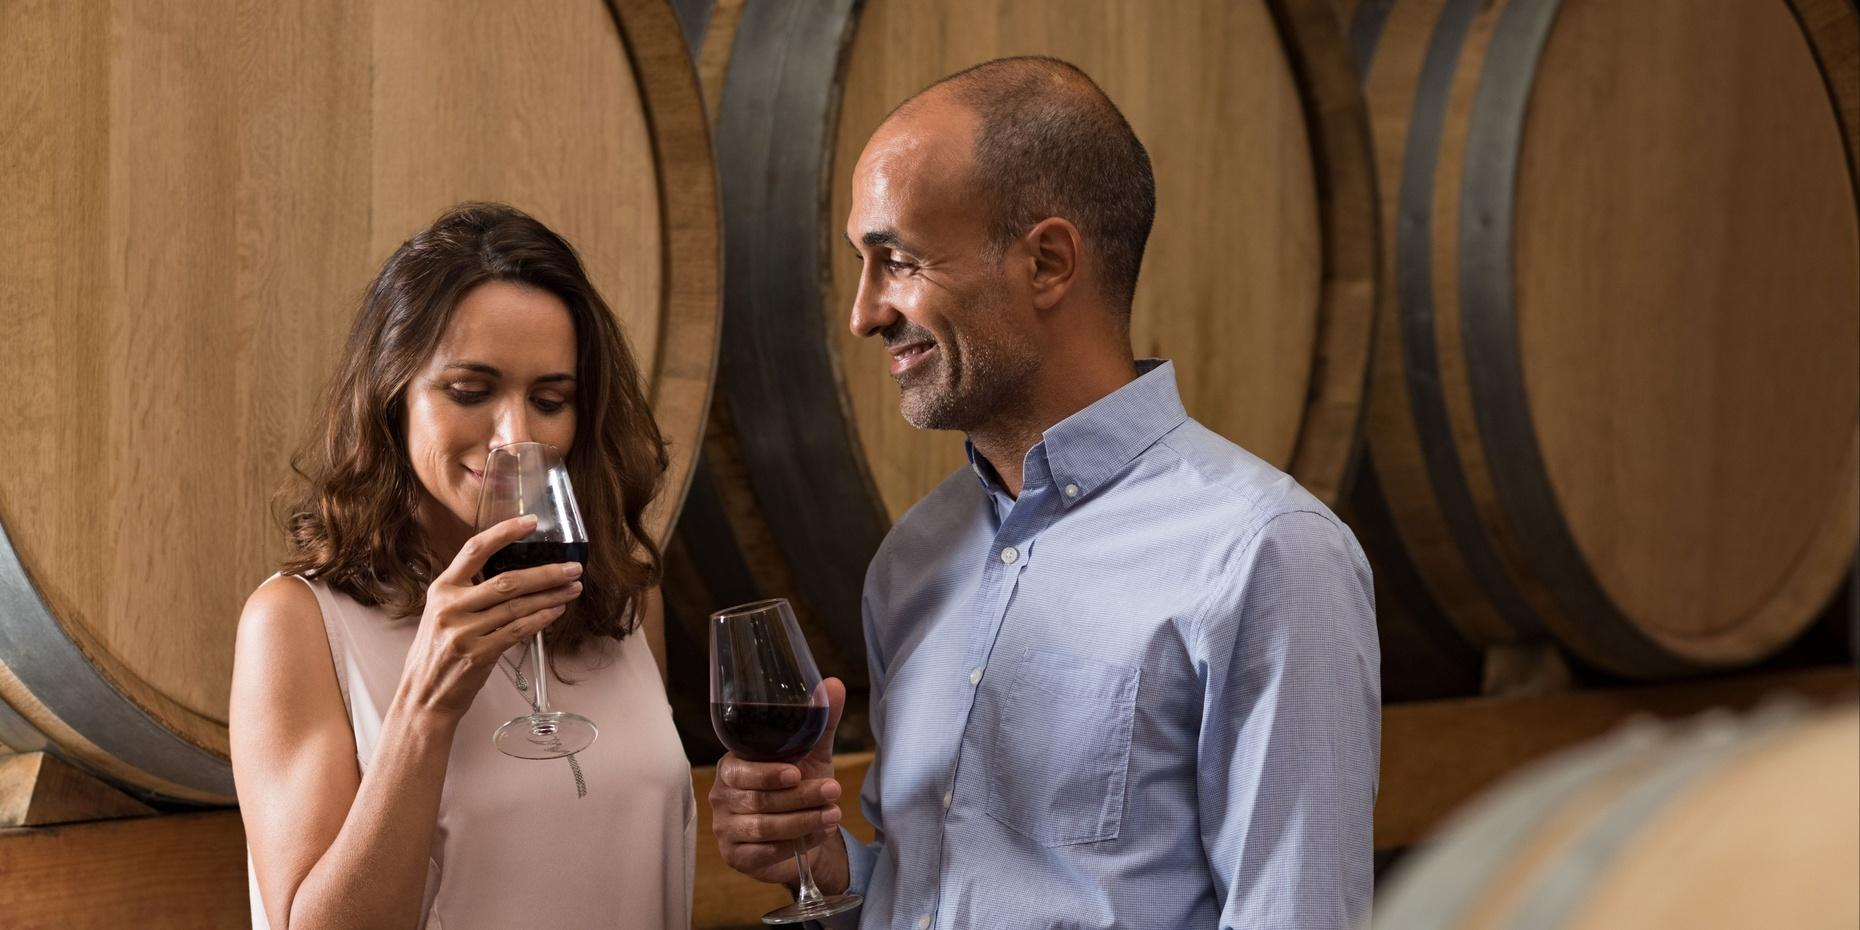 Half-Day Wine Country Experience - All Tastings Included